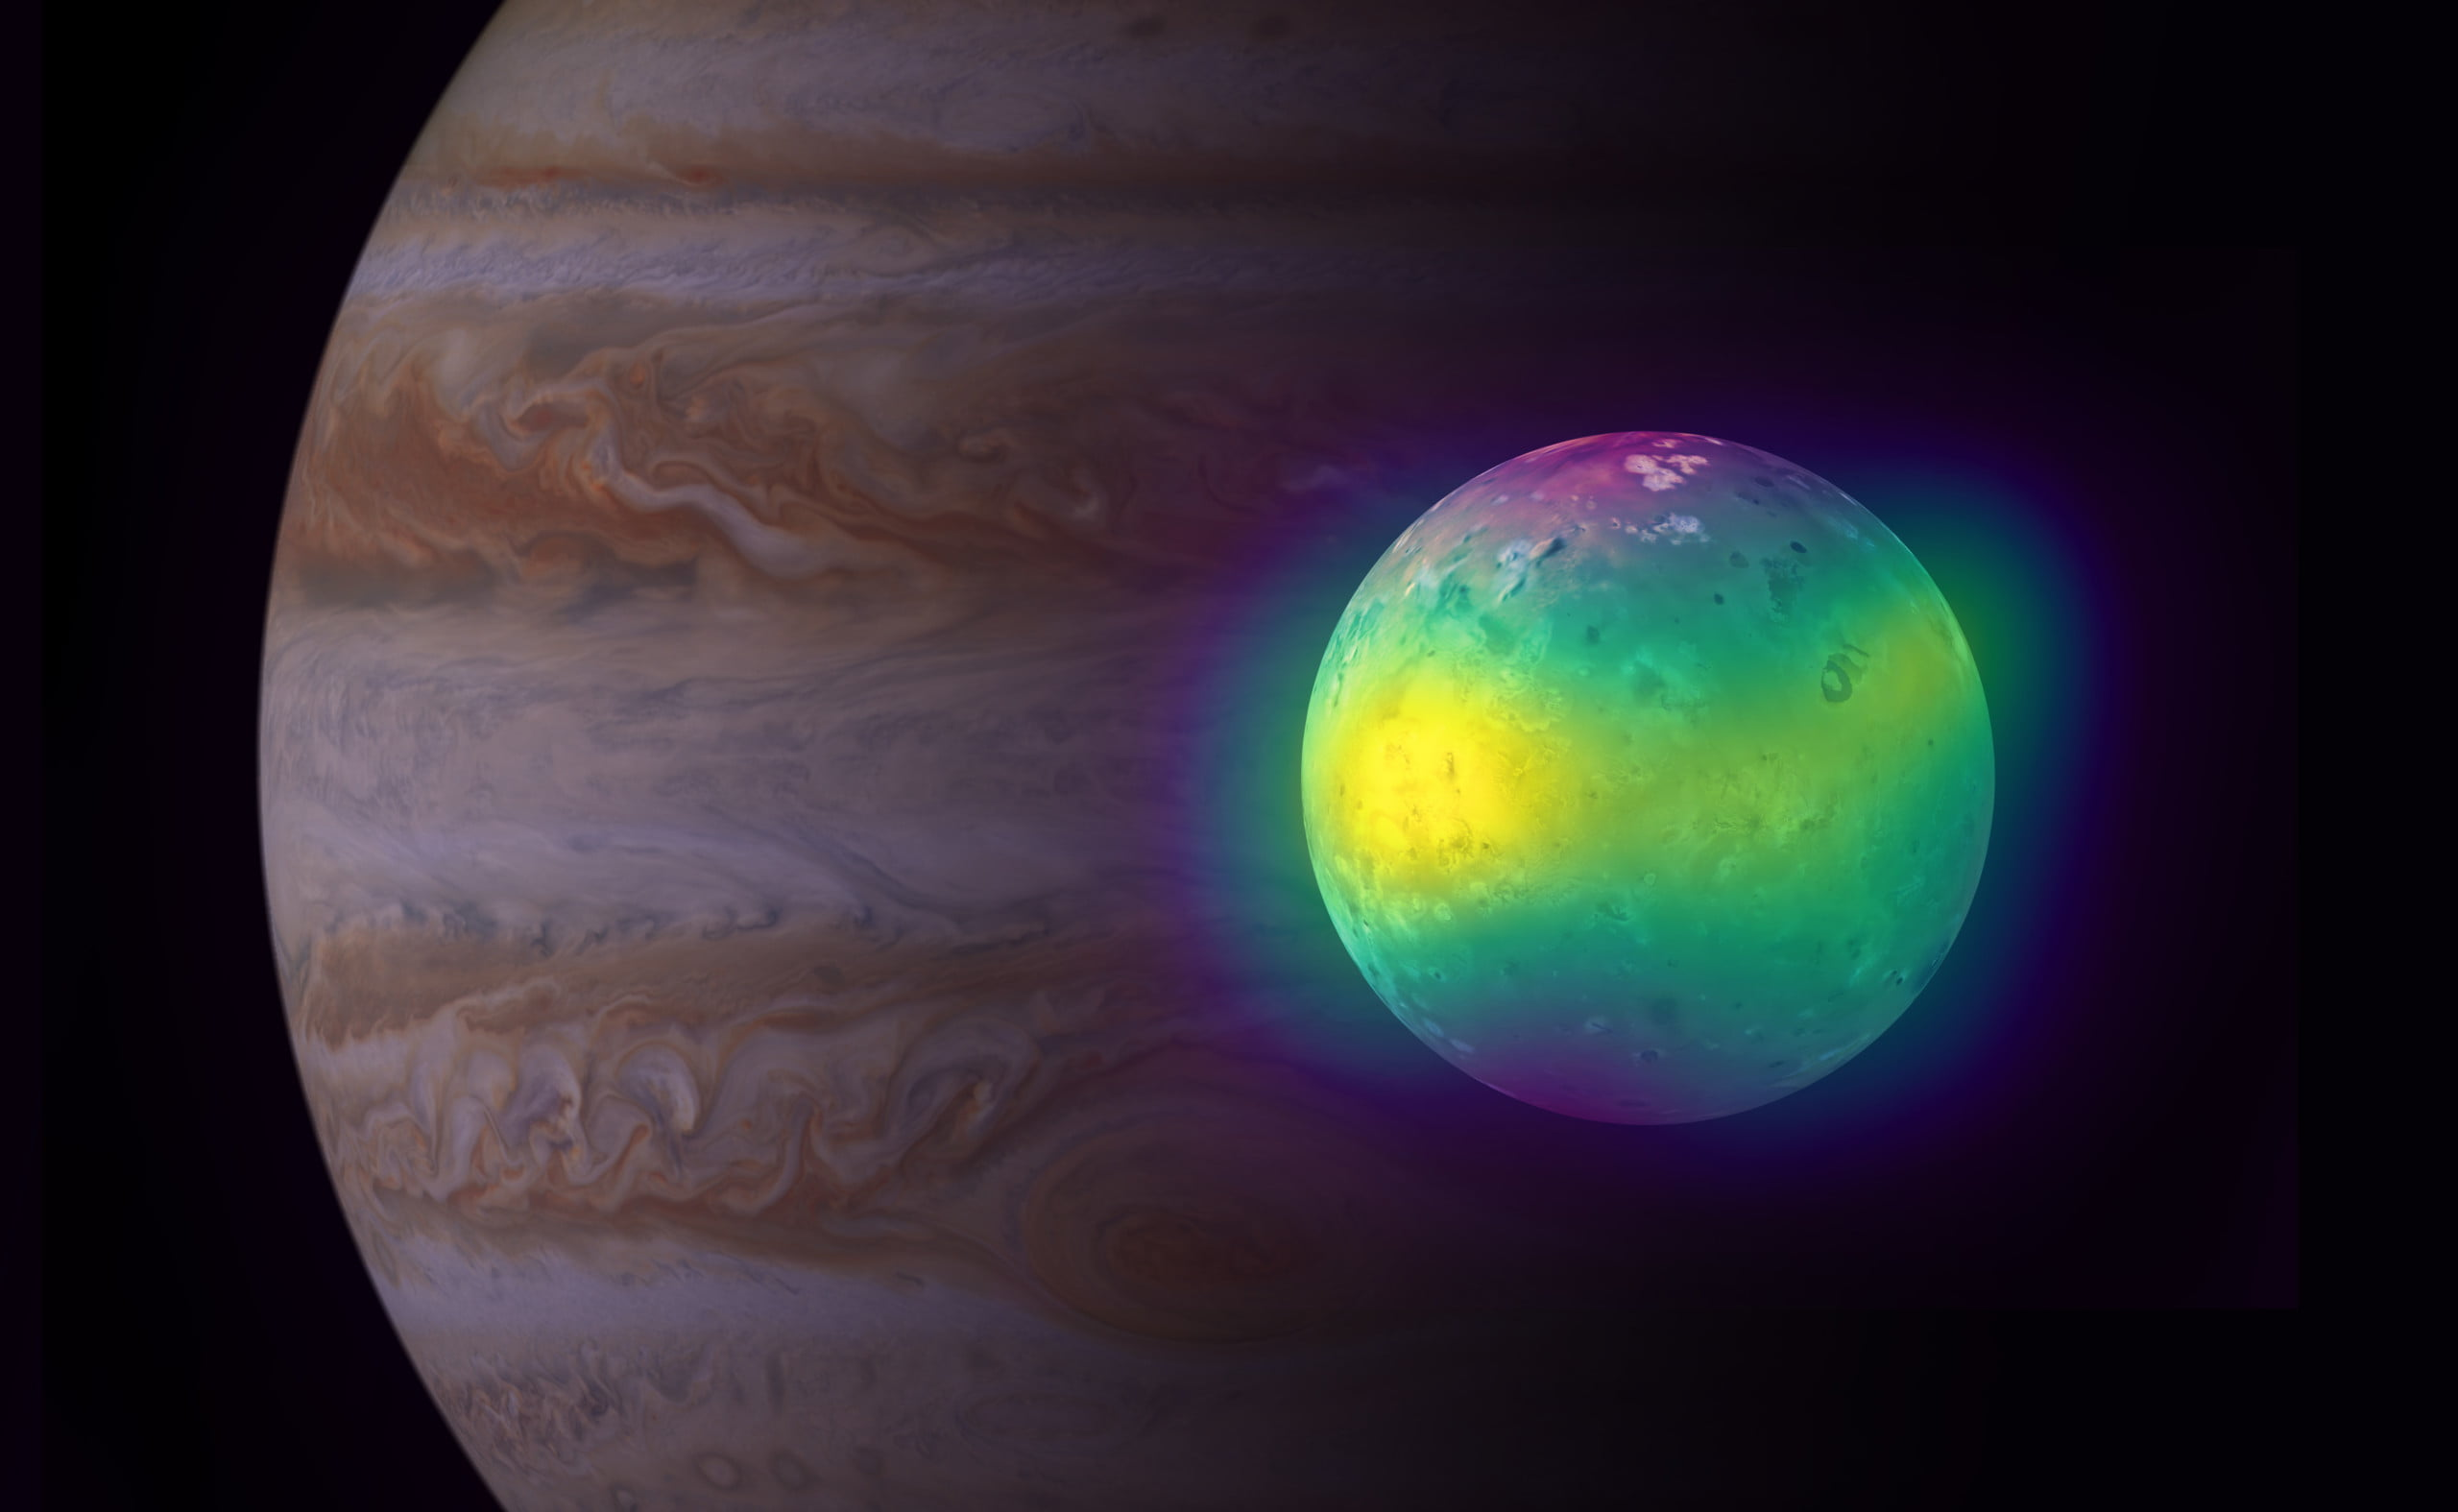 Composite image showing Jupiter's moon Io in radio (ALMA), and optical light (Voyager 1 and Galileo). The ALMA images of Io show for the first time plumes of sulfur dioxide (in yellow) rise up from its volcanoes. Jupiter is visible in the background (Cassini image).